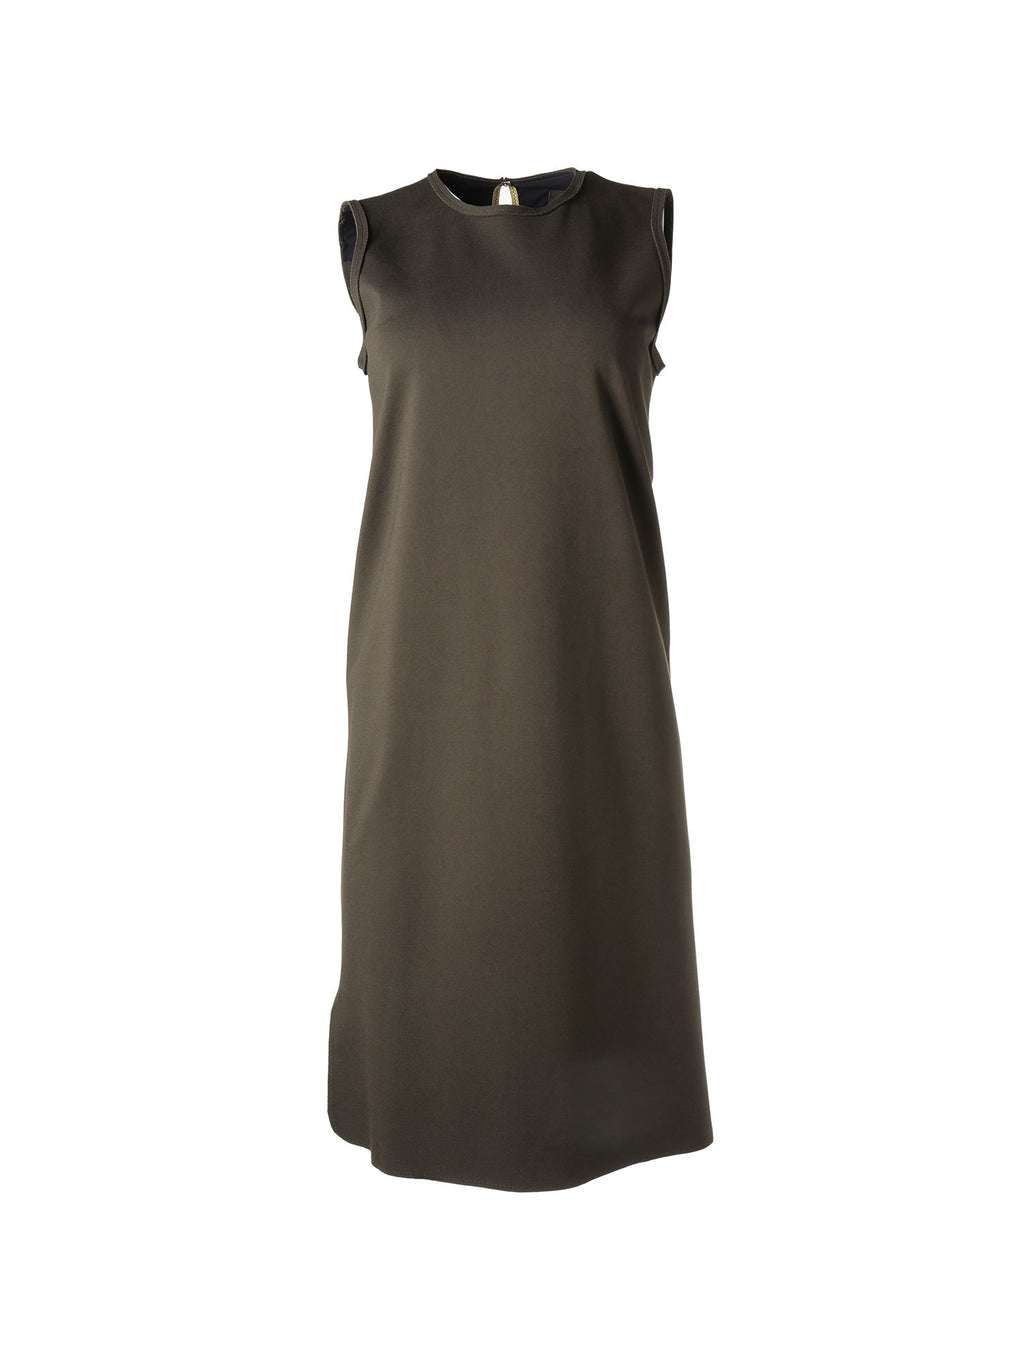 Marie Saint Pierre Cora2 Dress